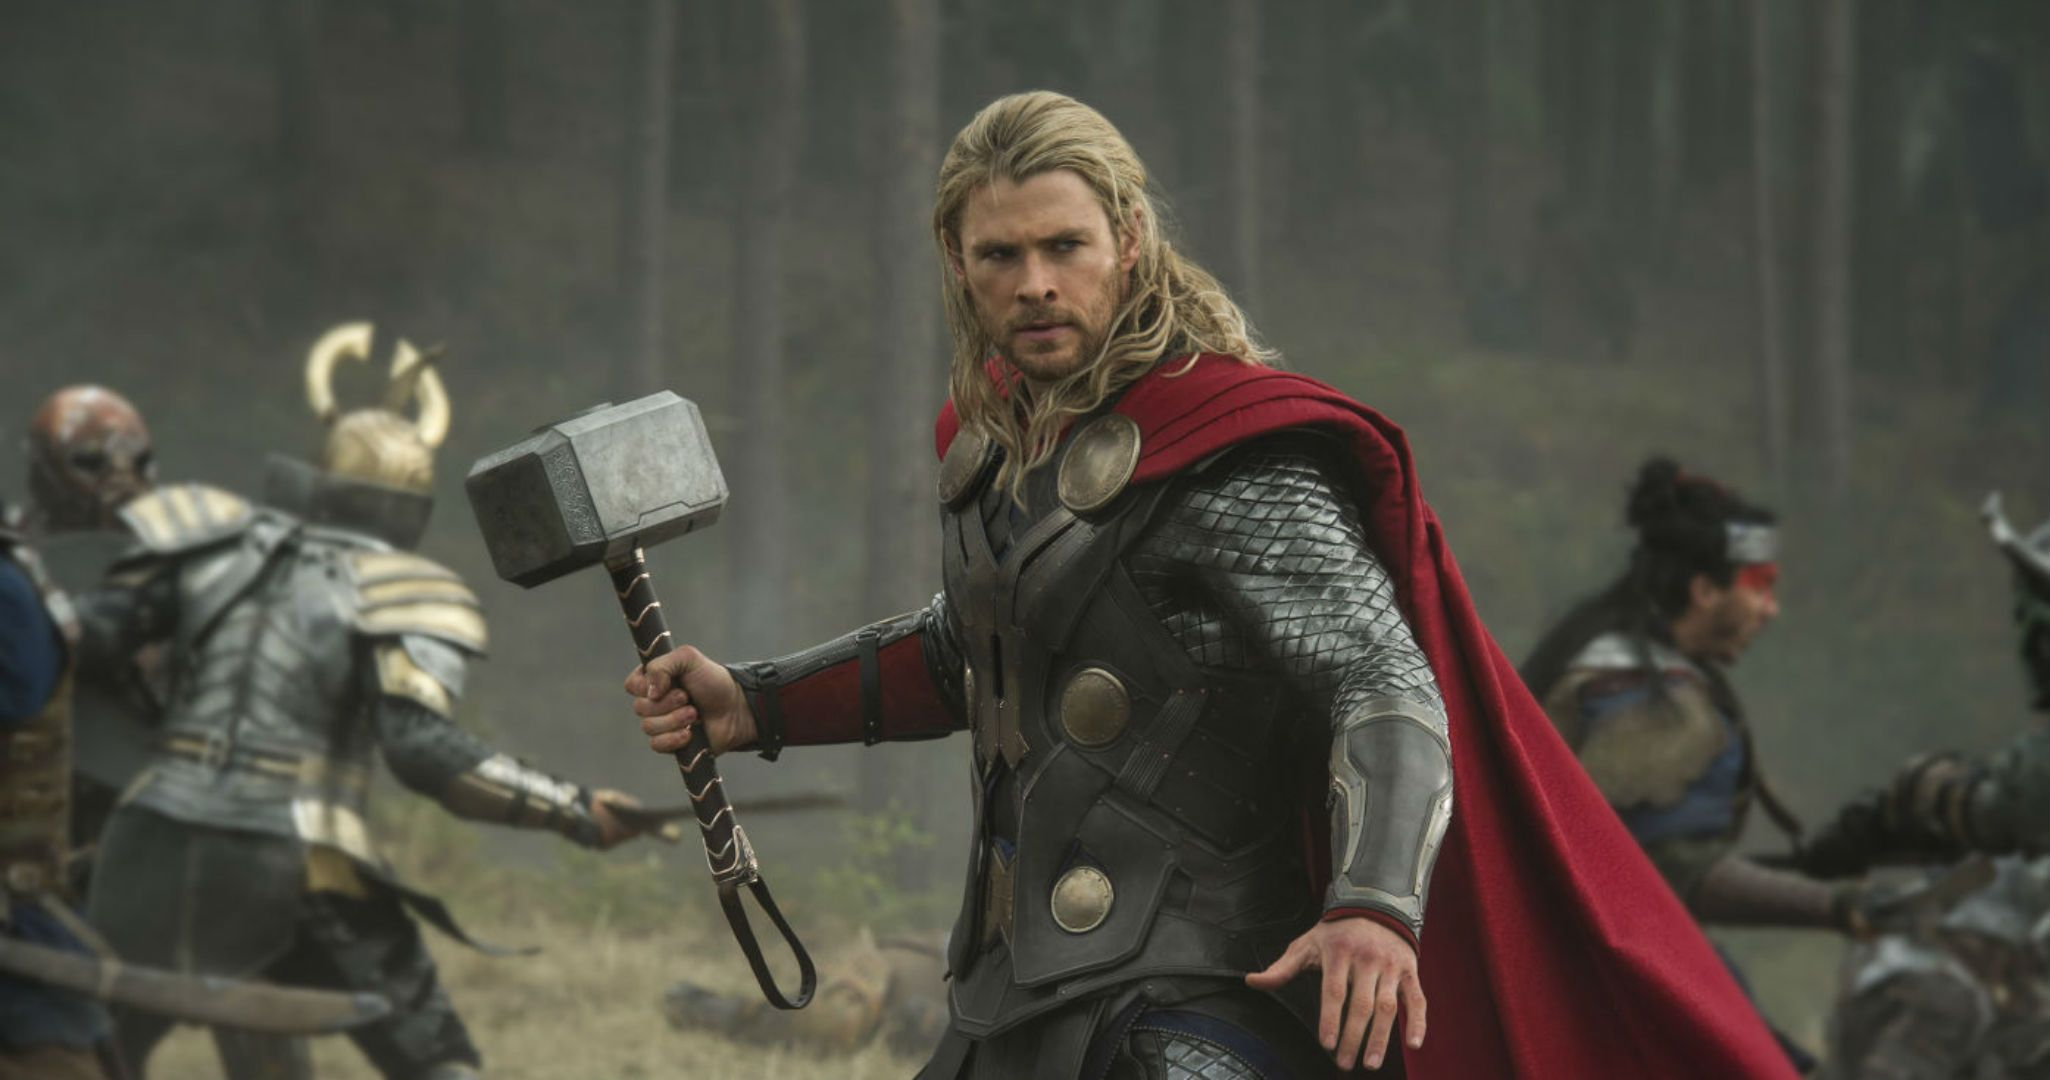 Thor: Love and Thunder director Taika Waititi reveals who is the star of the film